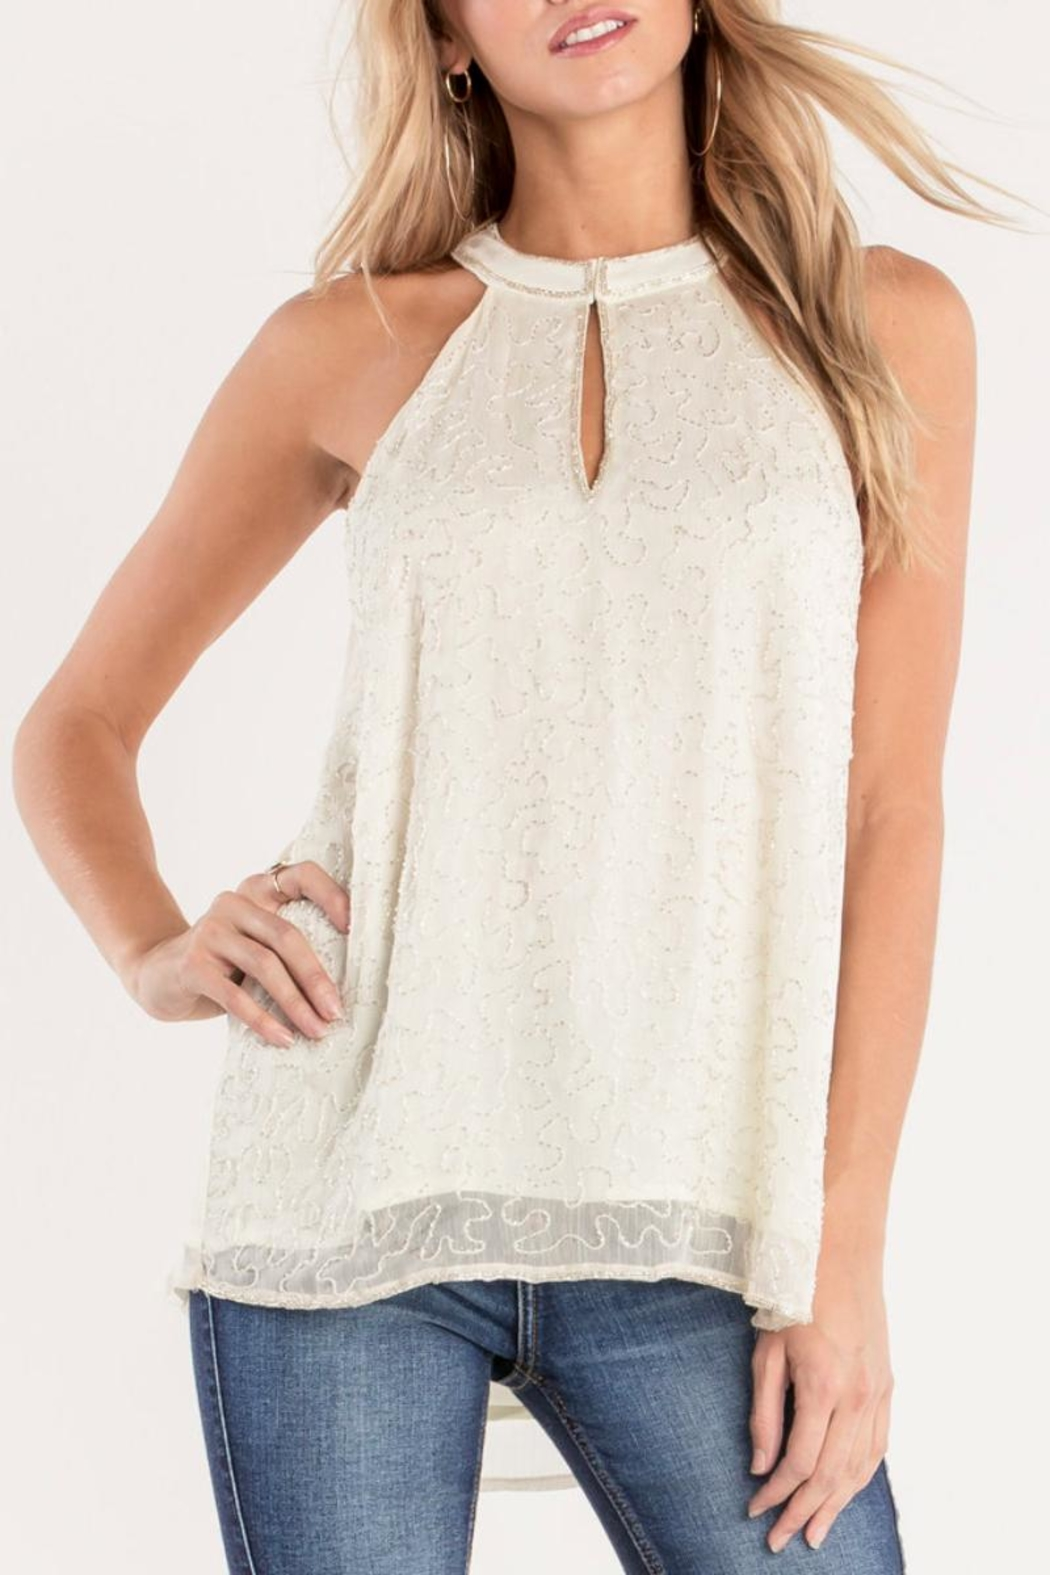 Miss Me White Beaded-Keyhole Blouse - Main Image